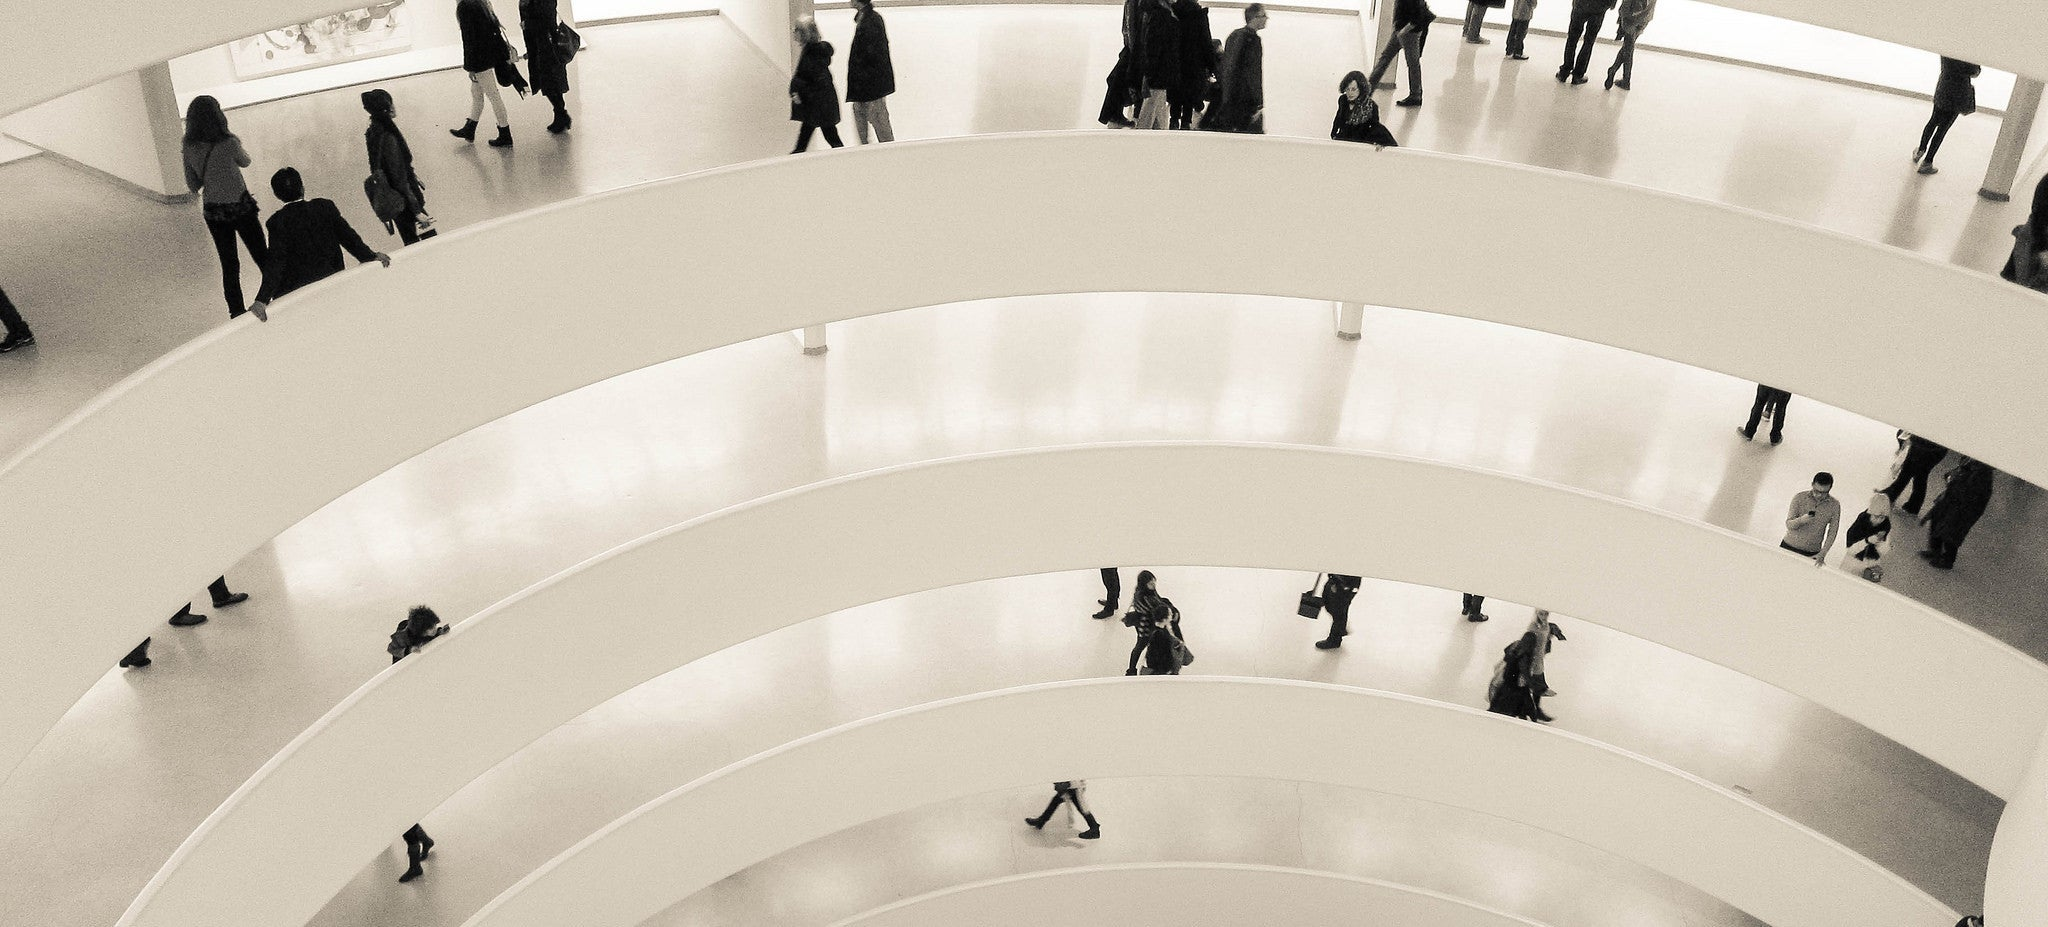 Take a Tour of New York's Guggenheim Museum From the Comfort of Your Desk